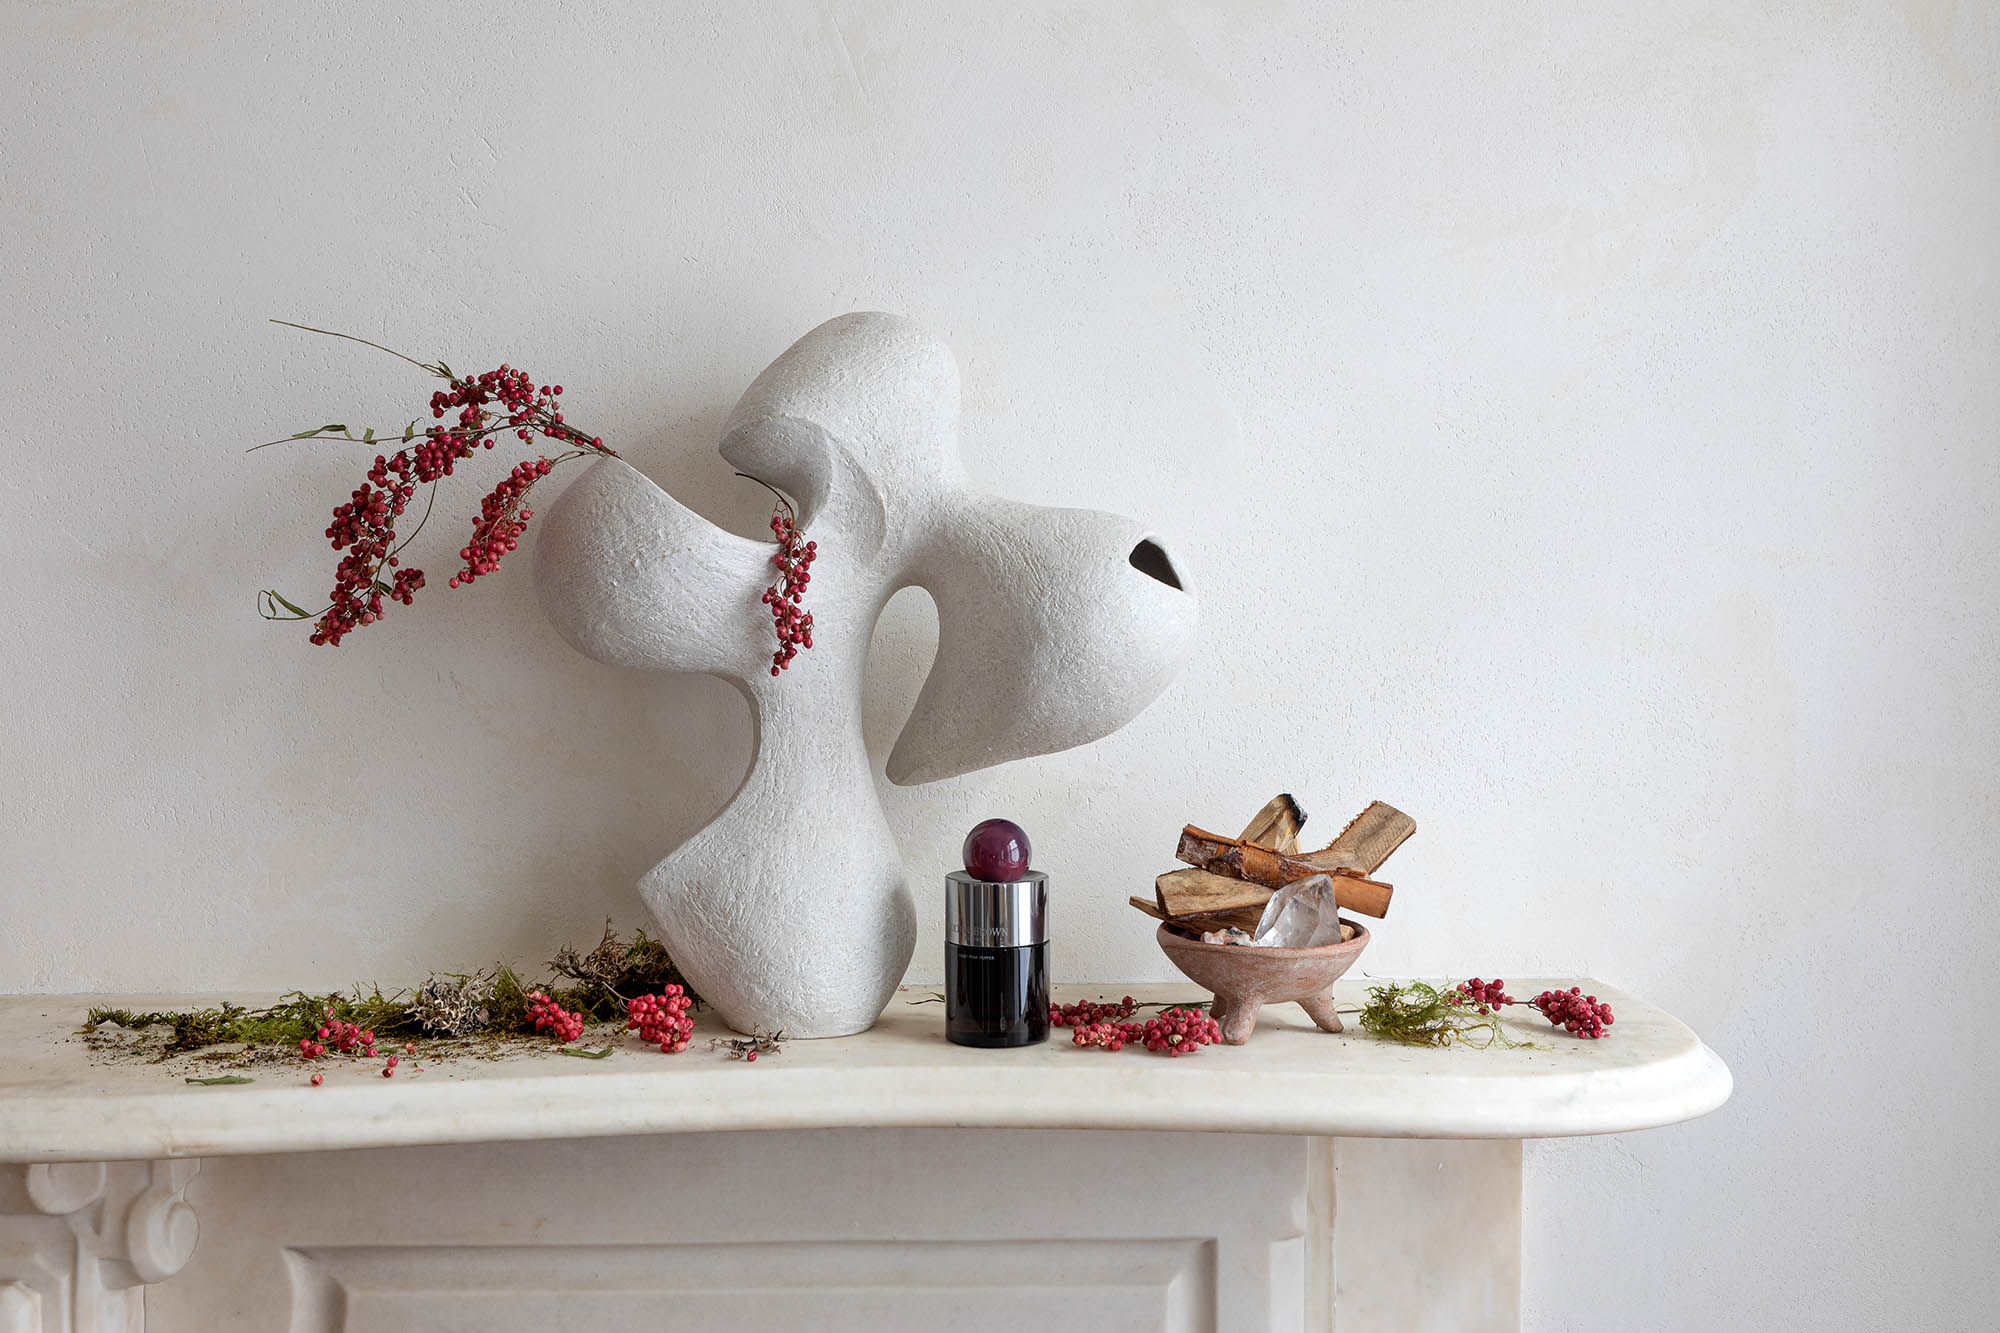 White sculpture on a fireplace mantel